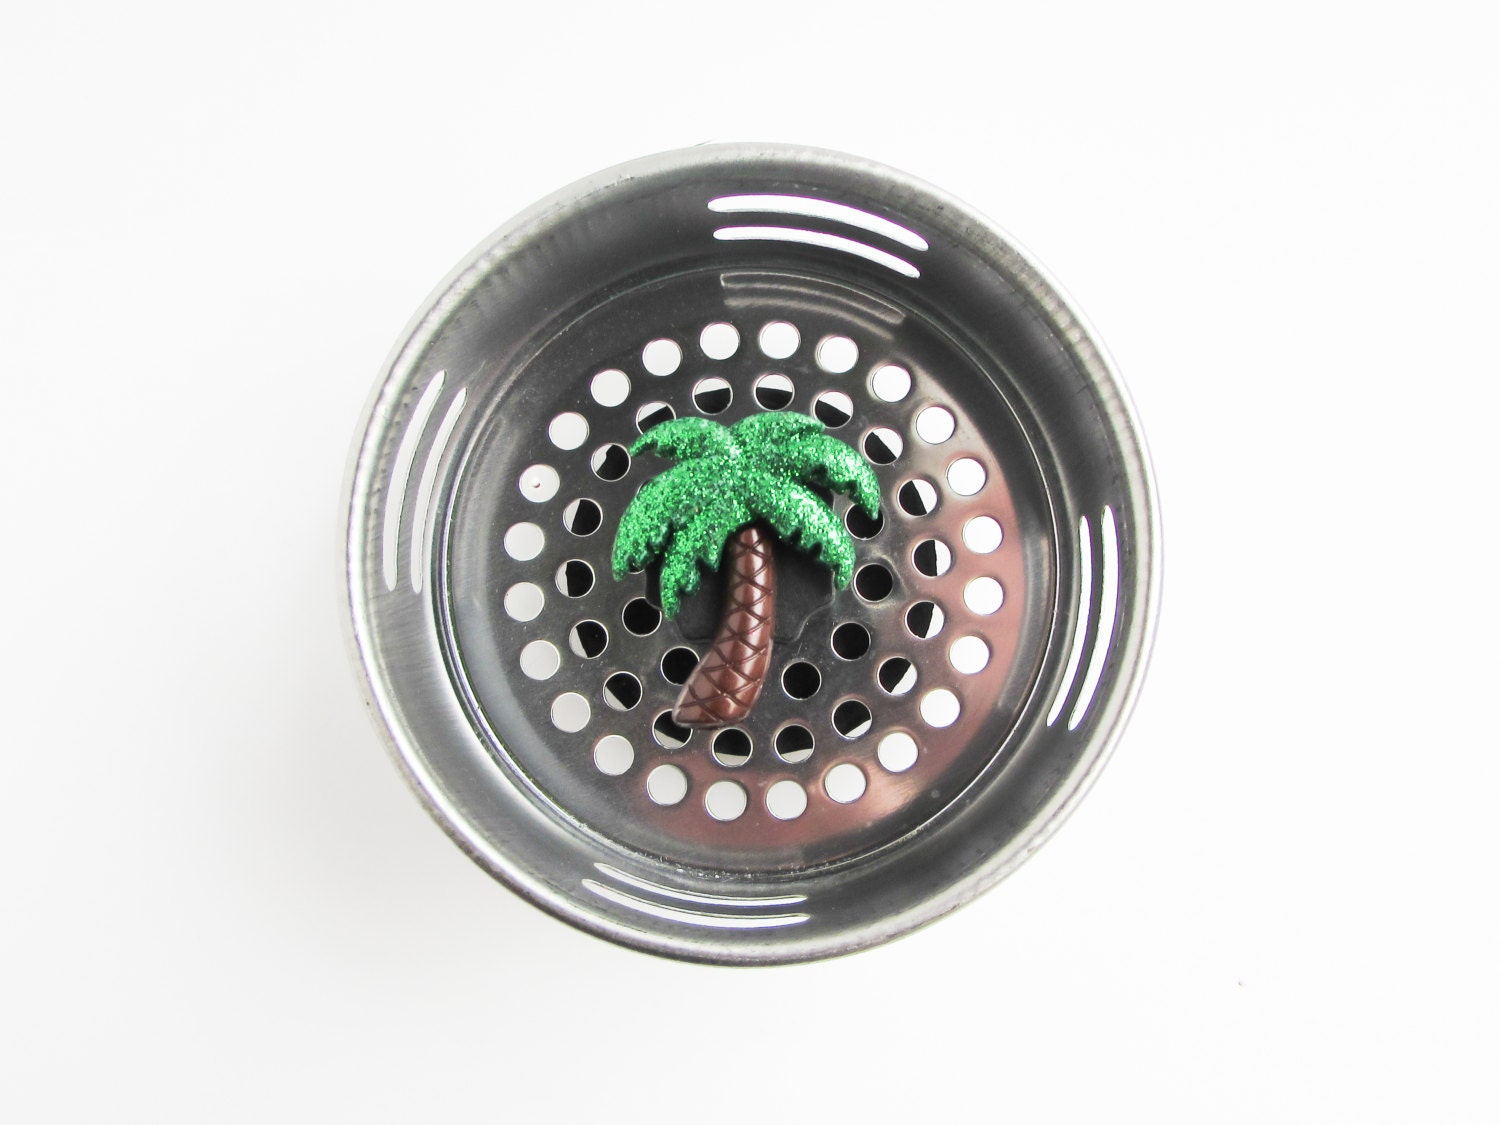 Sink strainer palm tree tropical decor by accessoriesbyash on etsy - Decorative kitchen sink strainers ...